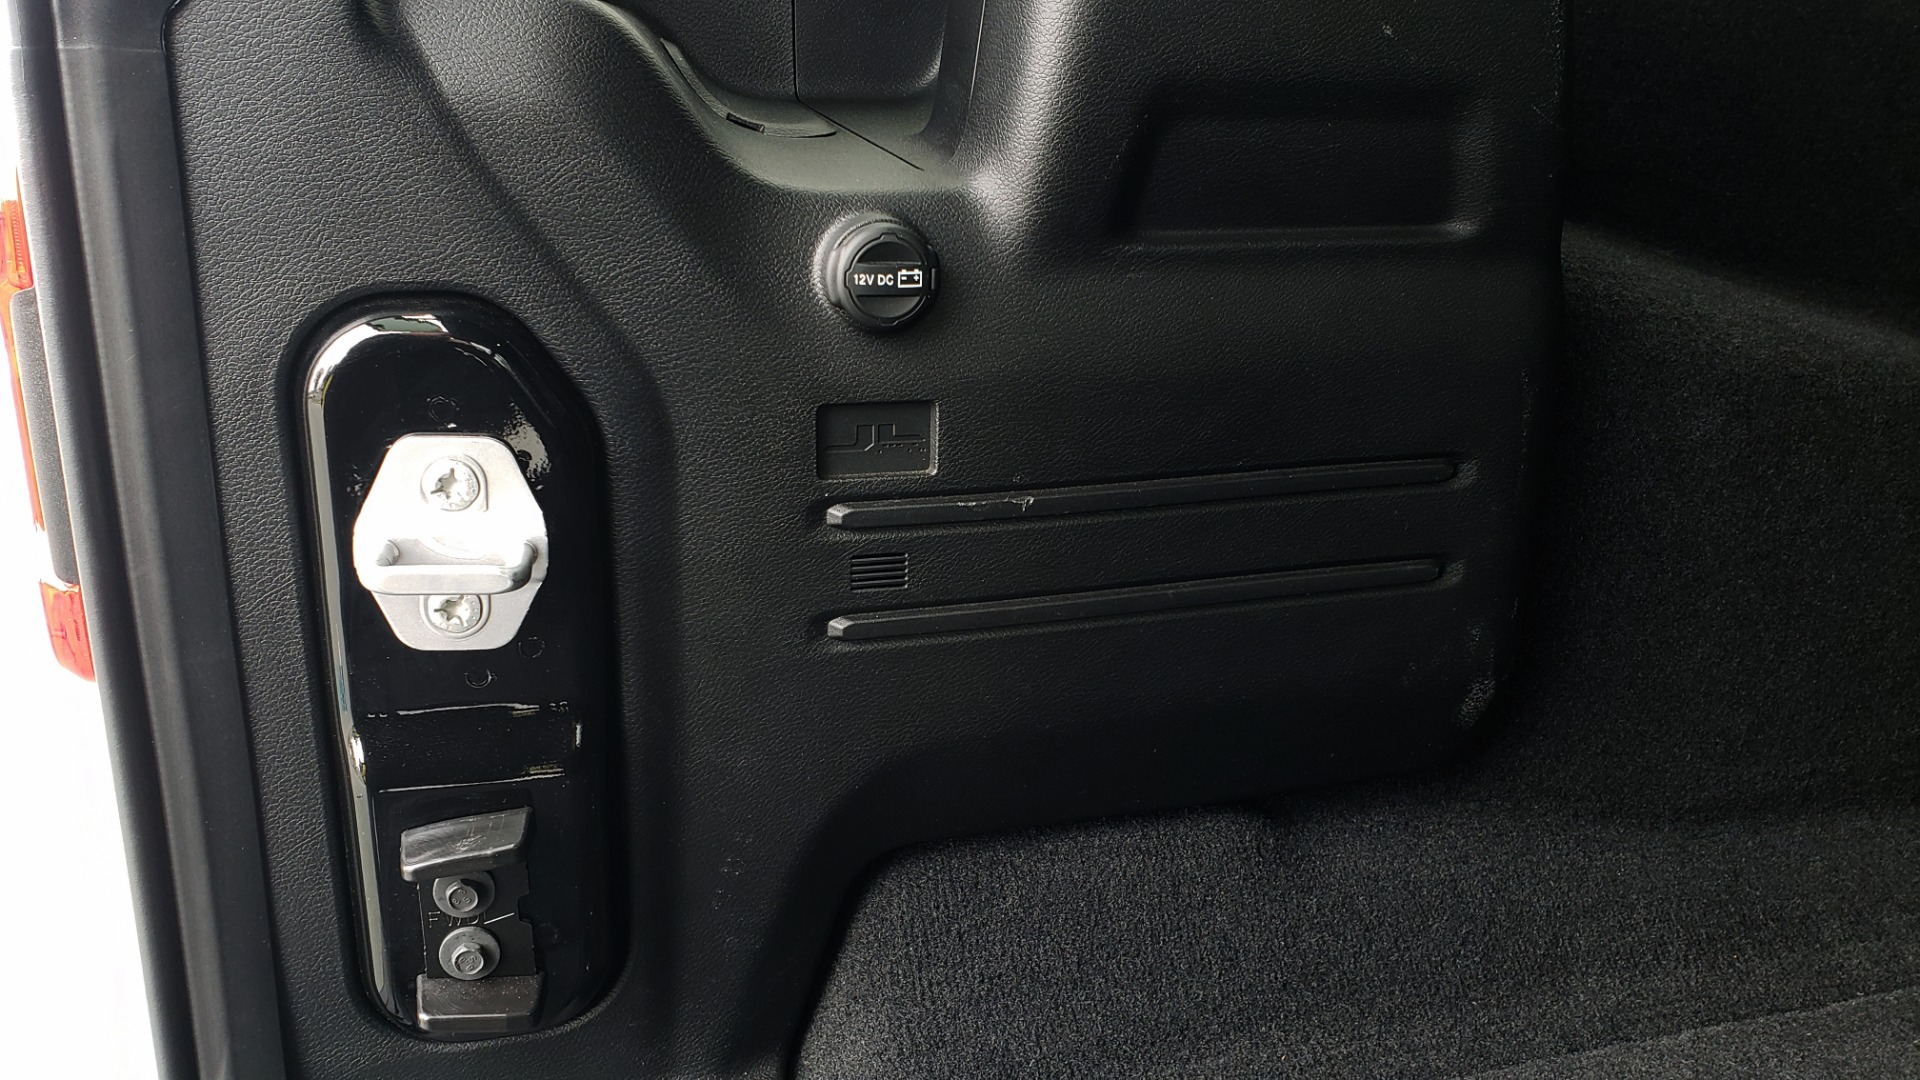 Used 2019 Jeep WRANGLER UNLIMITED RUBICON 4WD / V6 / 8-SPD AUTO / NAV / PWR TOP / REARVIEW for sale Sold at Formula Imports in Charlotte NC 28227 46